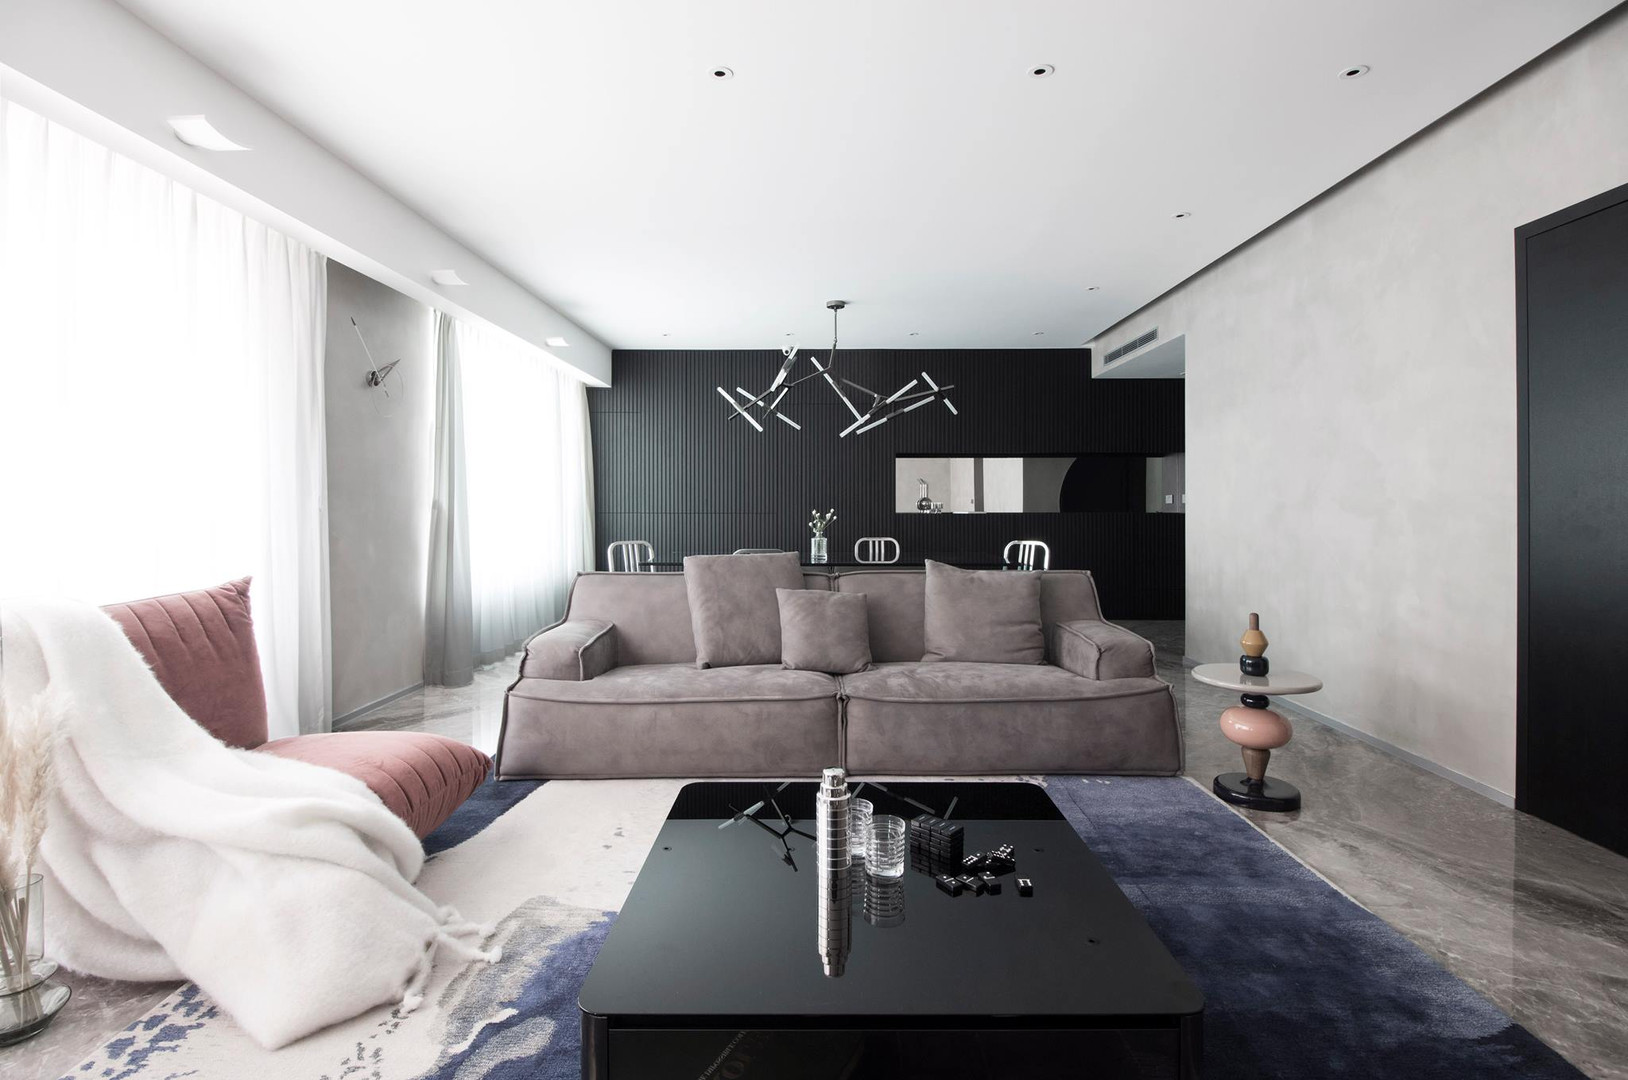 chill interior design (Celestial Heights)